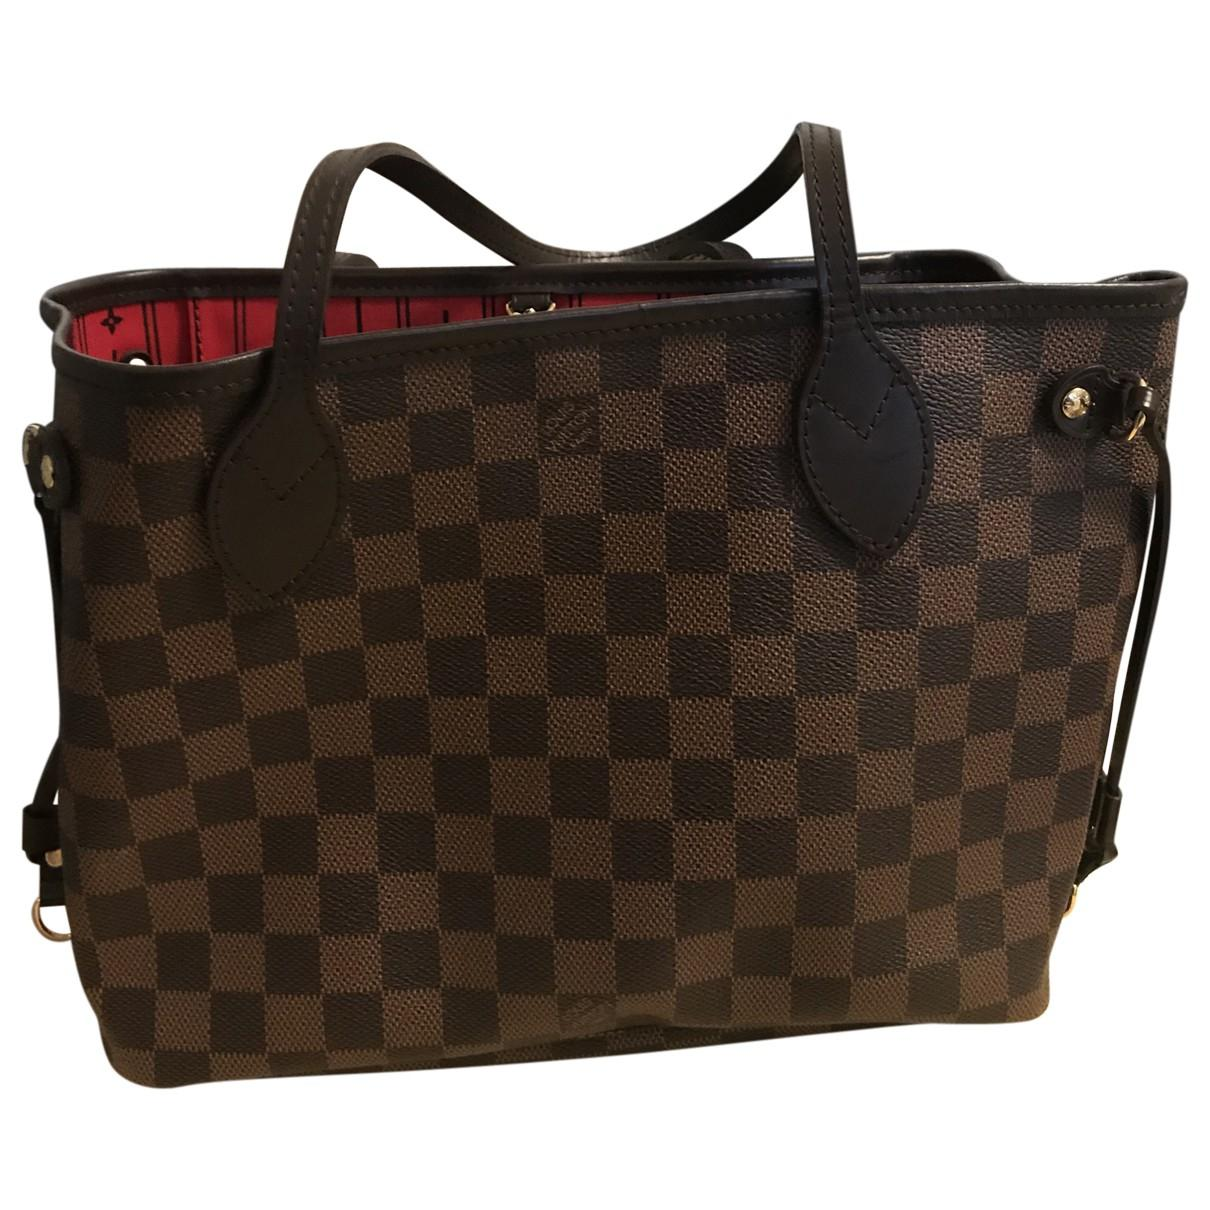 Louis Vuitton Neverfull Cloth Tote in Brown - Lyst f7b83060572